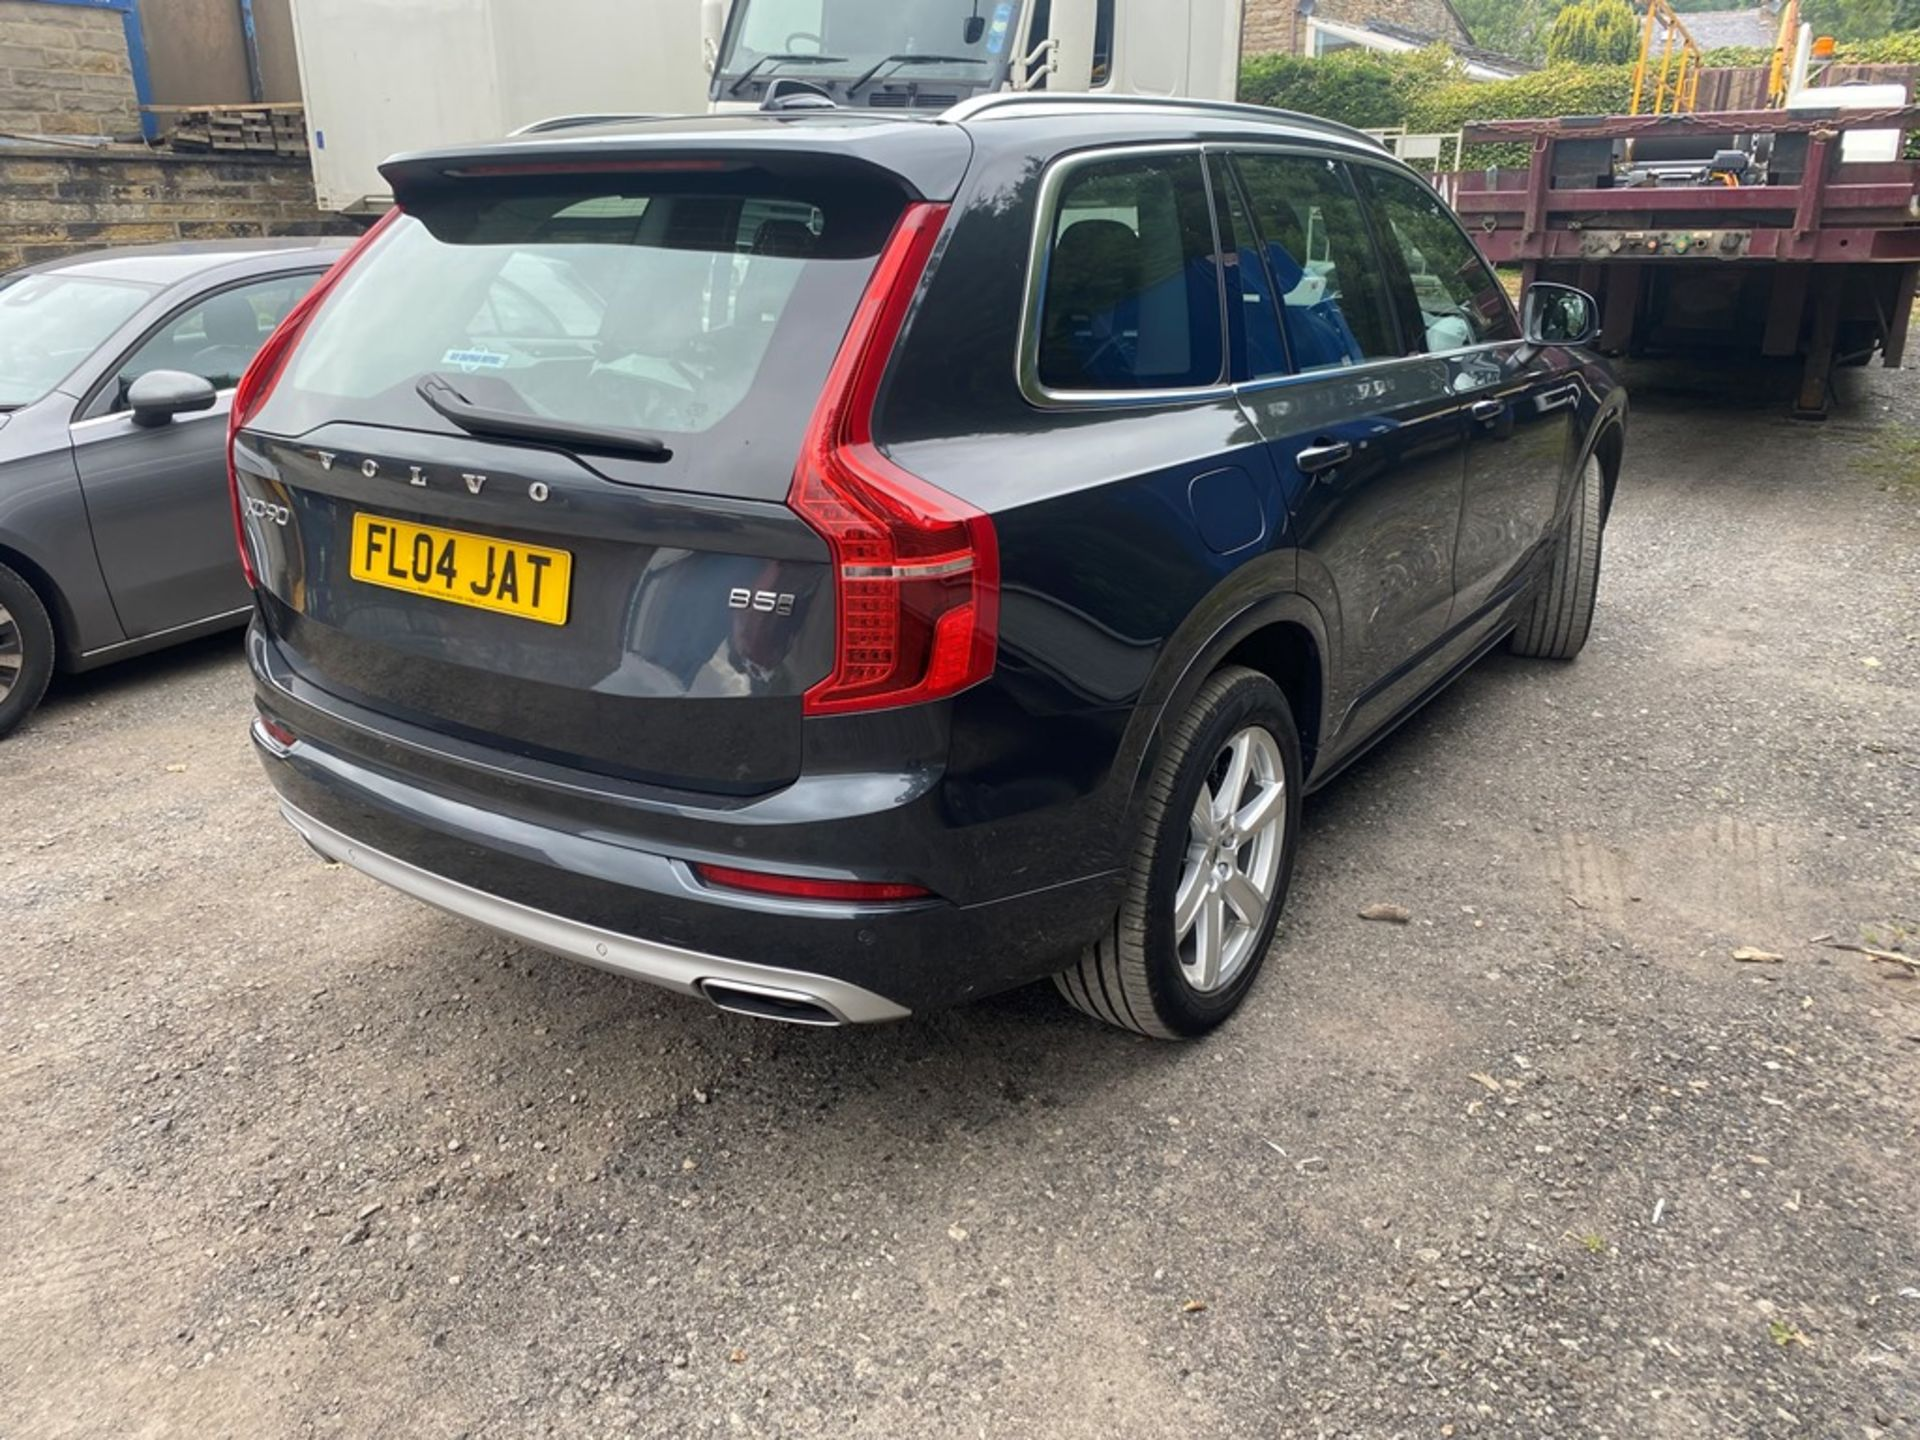 VOLVO XC90 MOMENTUM PRO B5 AWD DIESEL AUTO SUV, registration no. KF69 GWP, date first registered - Image 3 of 12